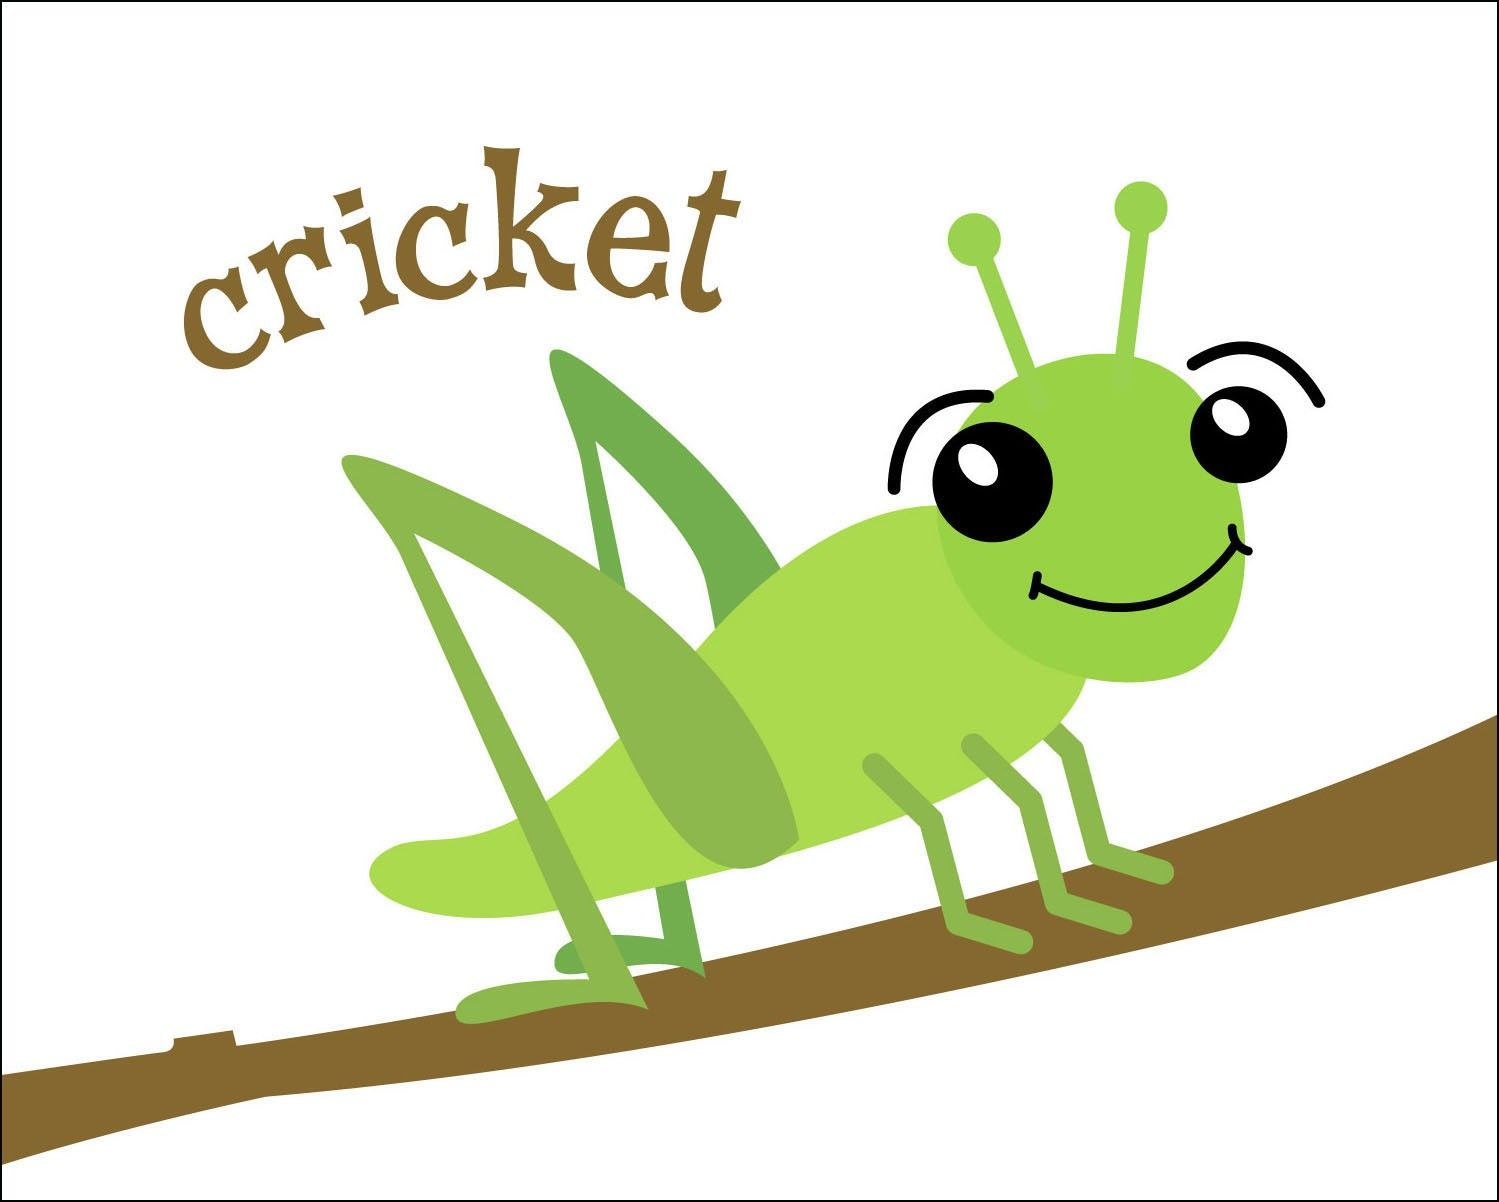 Crickets are annoying, whether in garden or home, and hiring an.